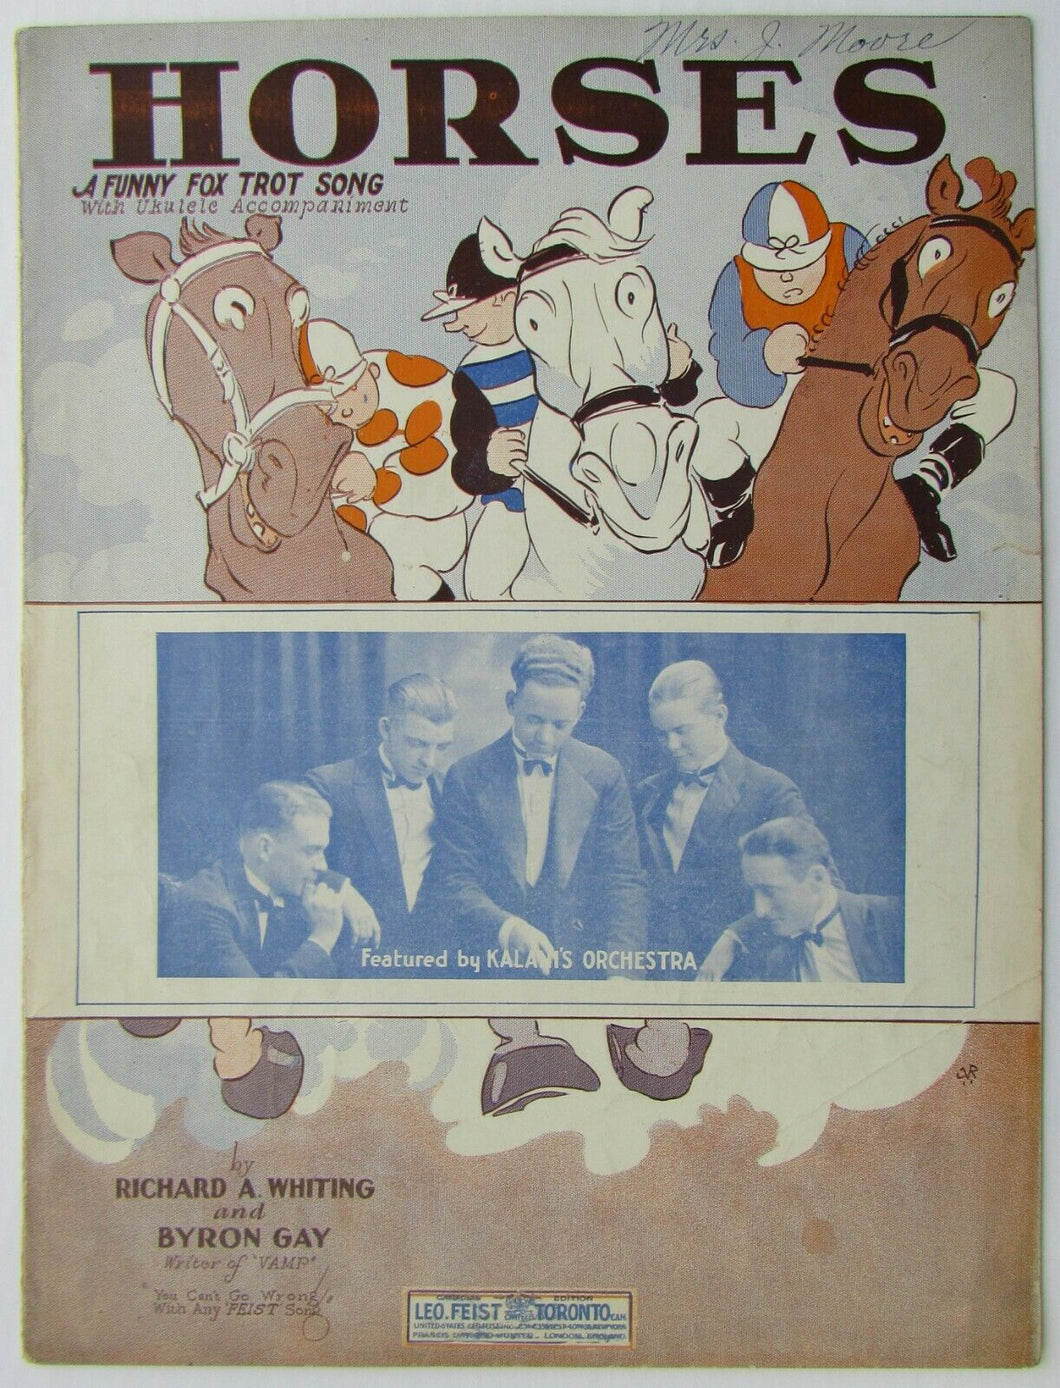 1936 Original Horse - A Funny Fox Trot Song PVG Sheet Music - Richard A Whiting